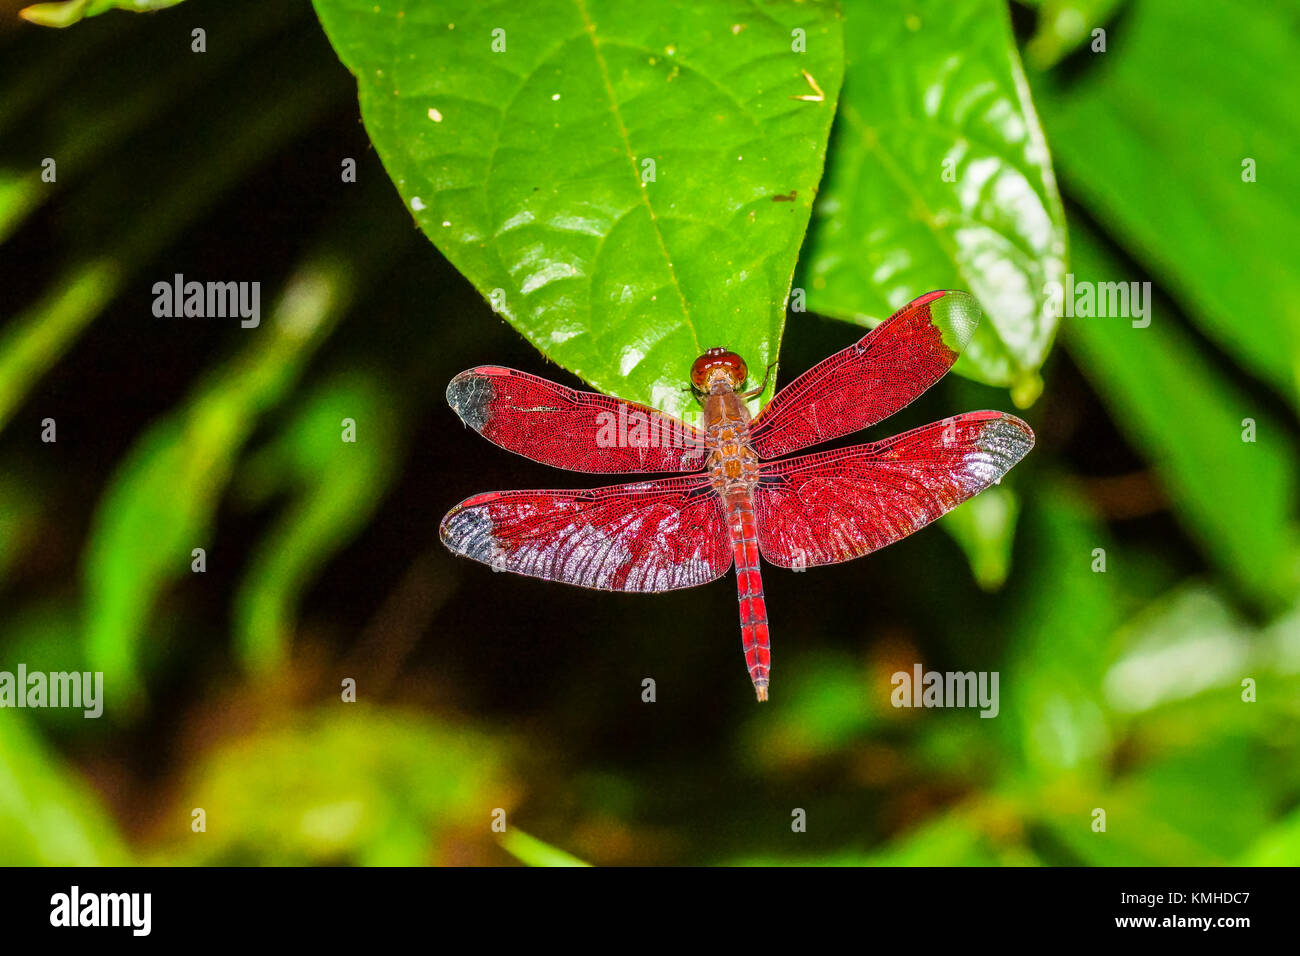 Red dragonfly holding on green leaf. - Stock Image